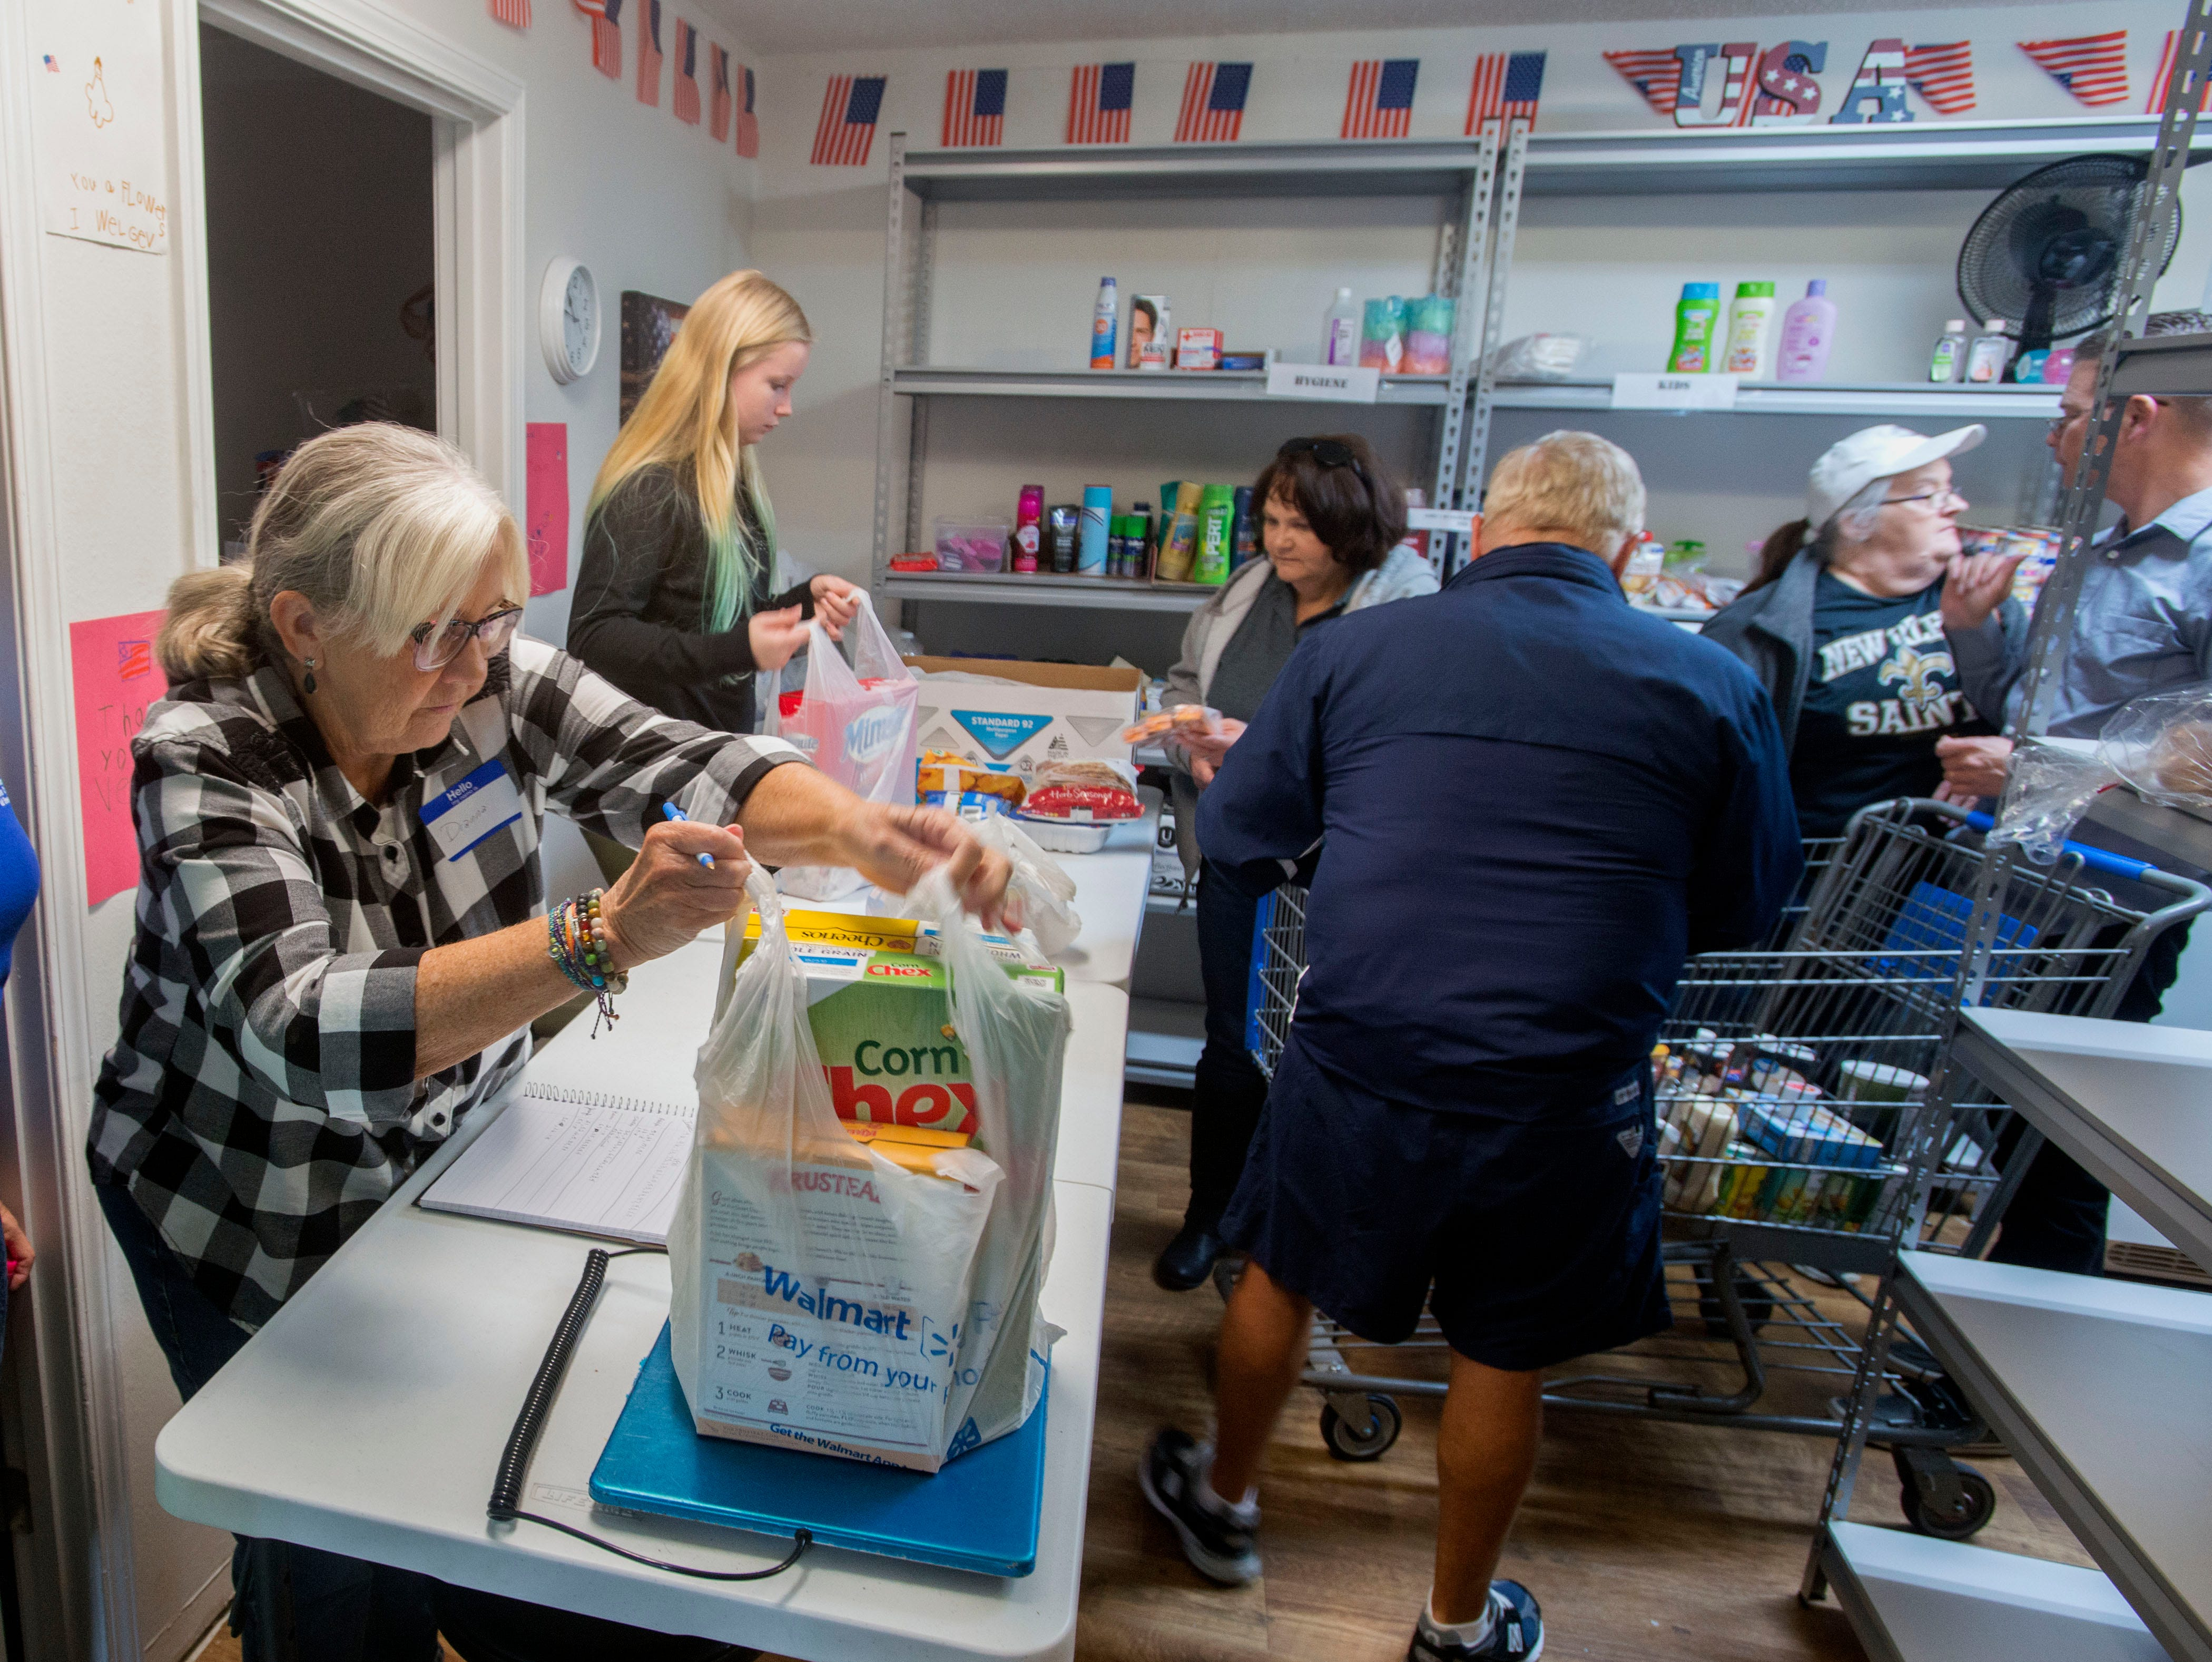 Navarre-based Food For Veterans is a lifeline for some area families in need